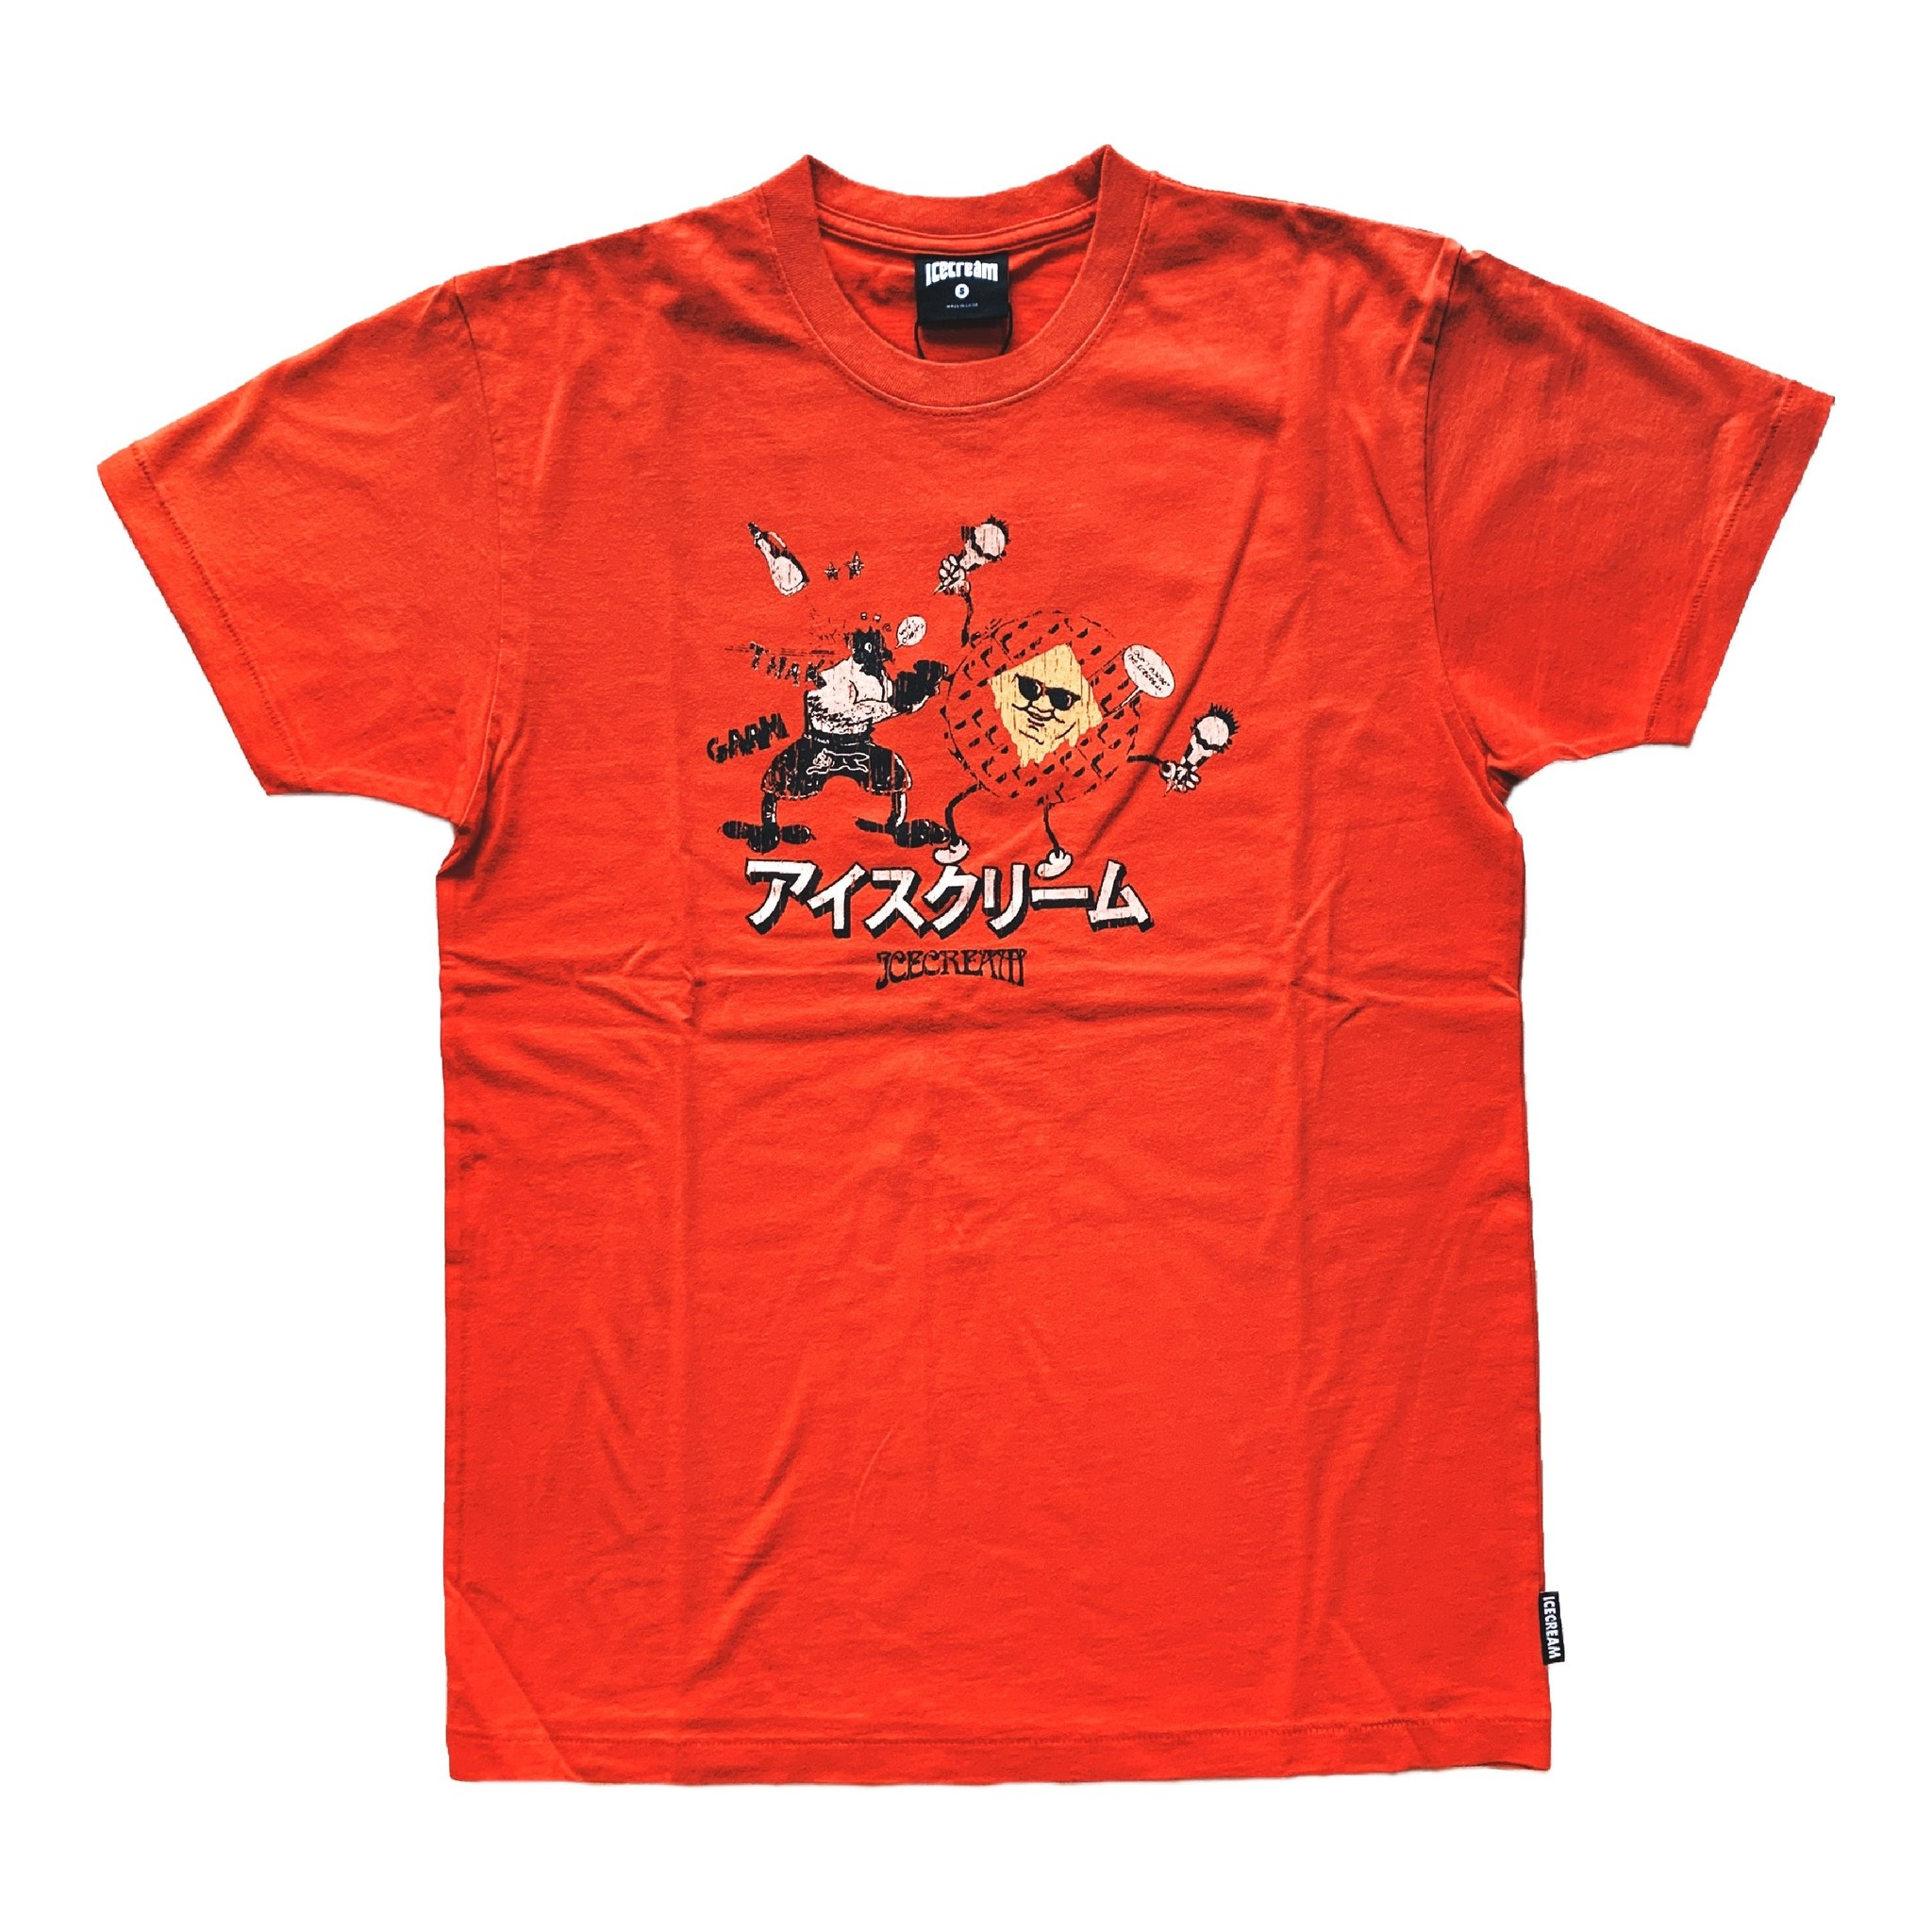 Icecream icecream Reynolds SS Tee Red